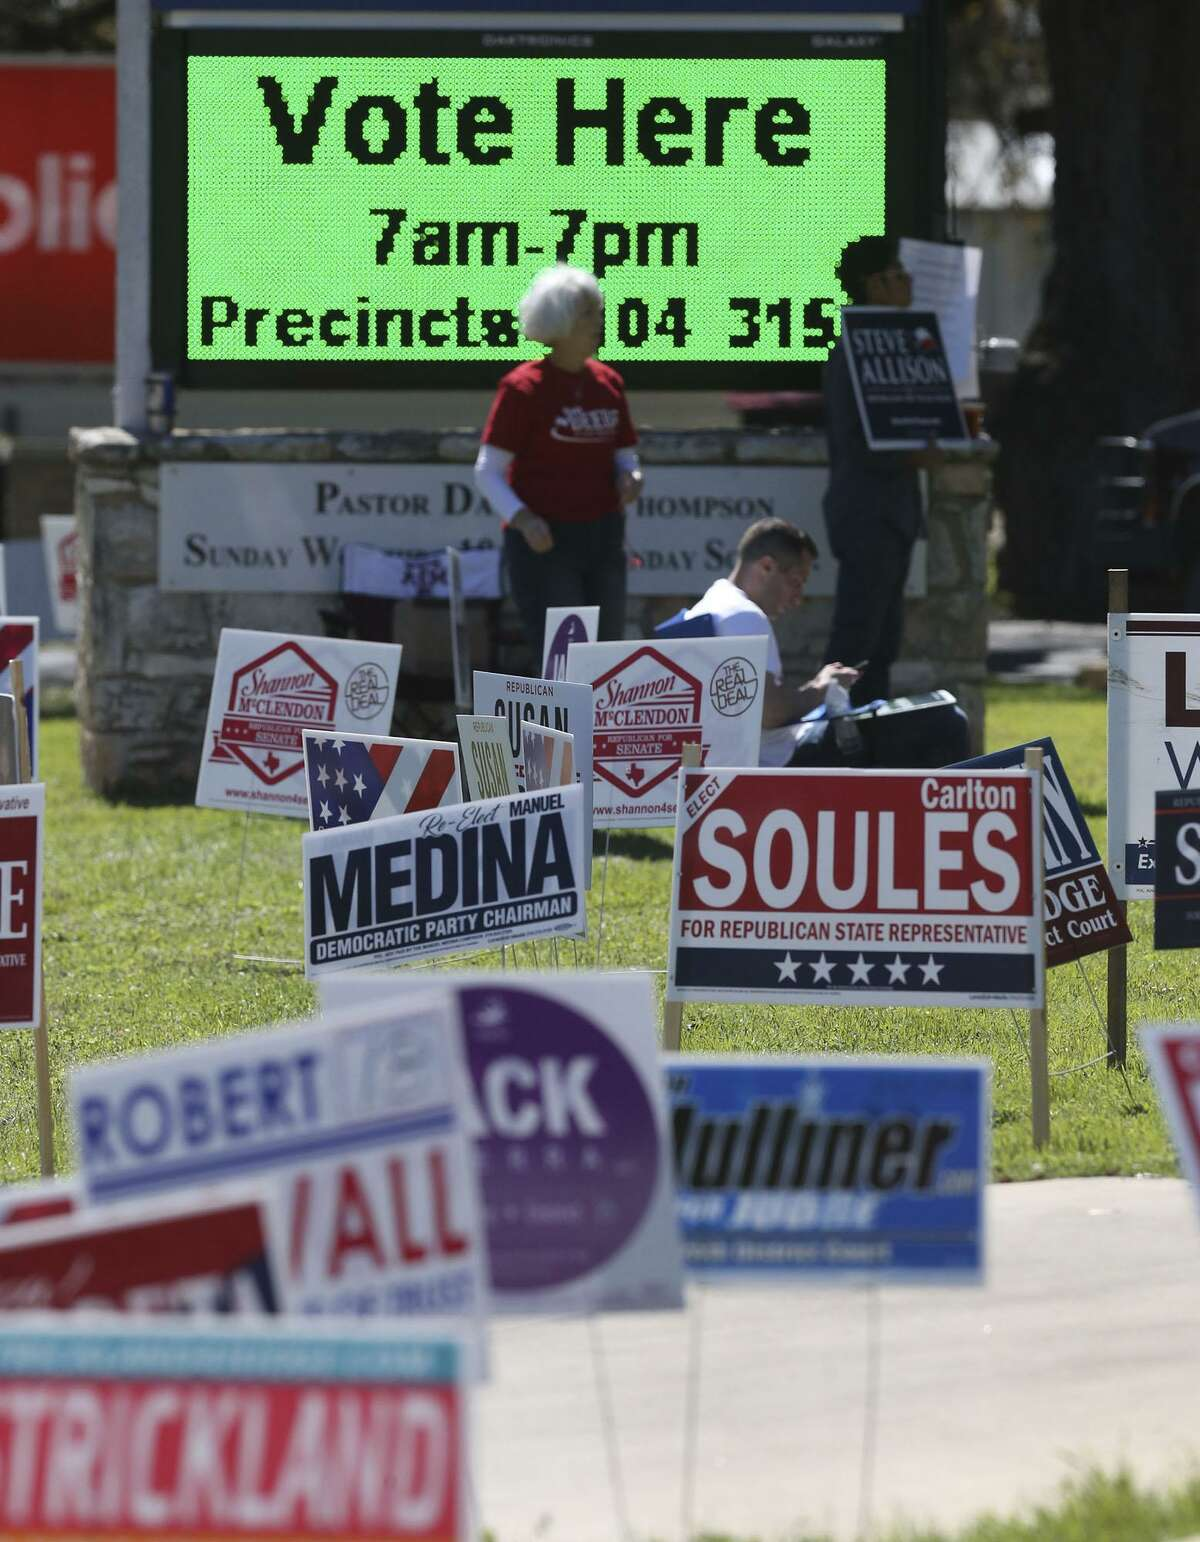 Some patterns can be gleaned from the turnout in the March 6 primary.